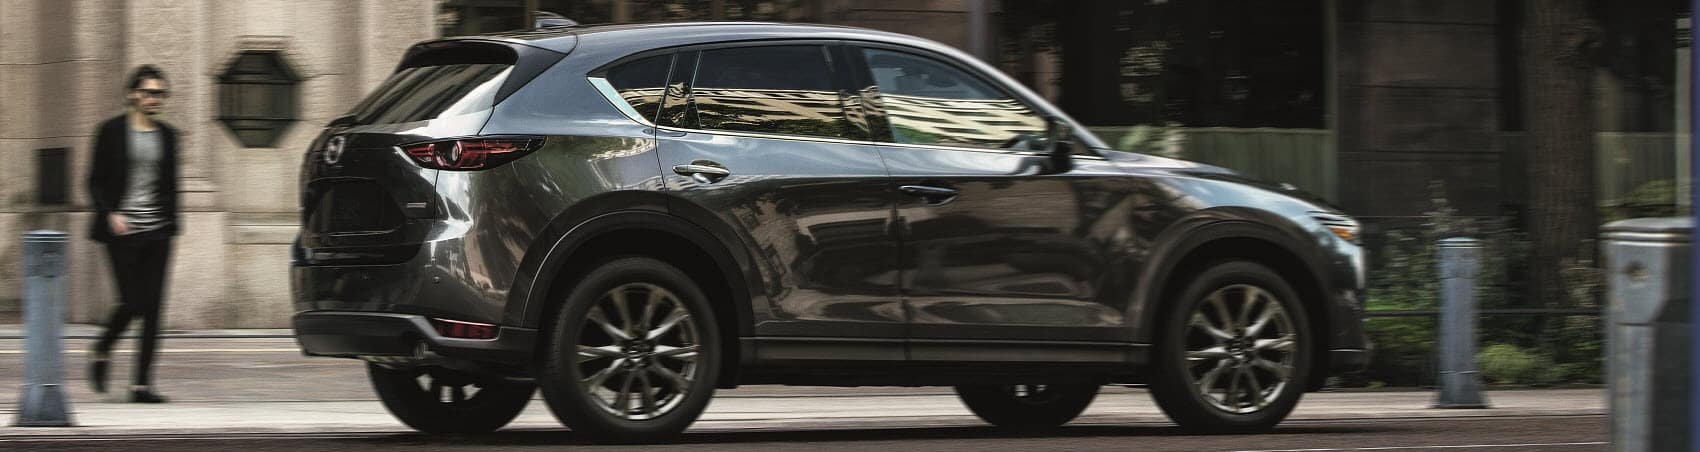 Mazda CX-5 vs Toyota RAV4